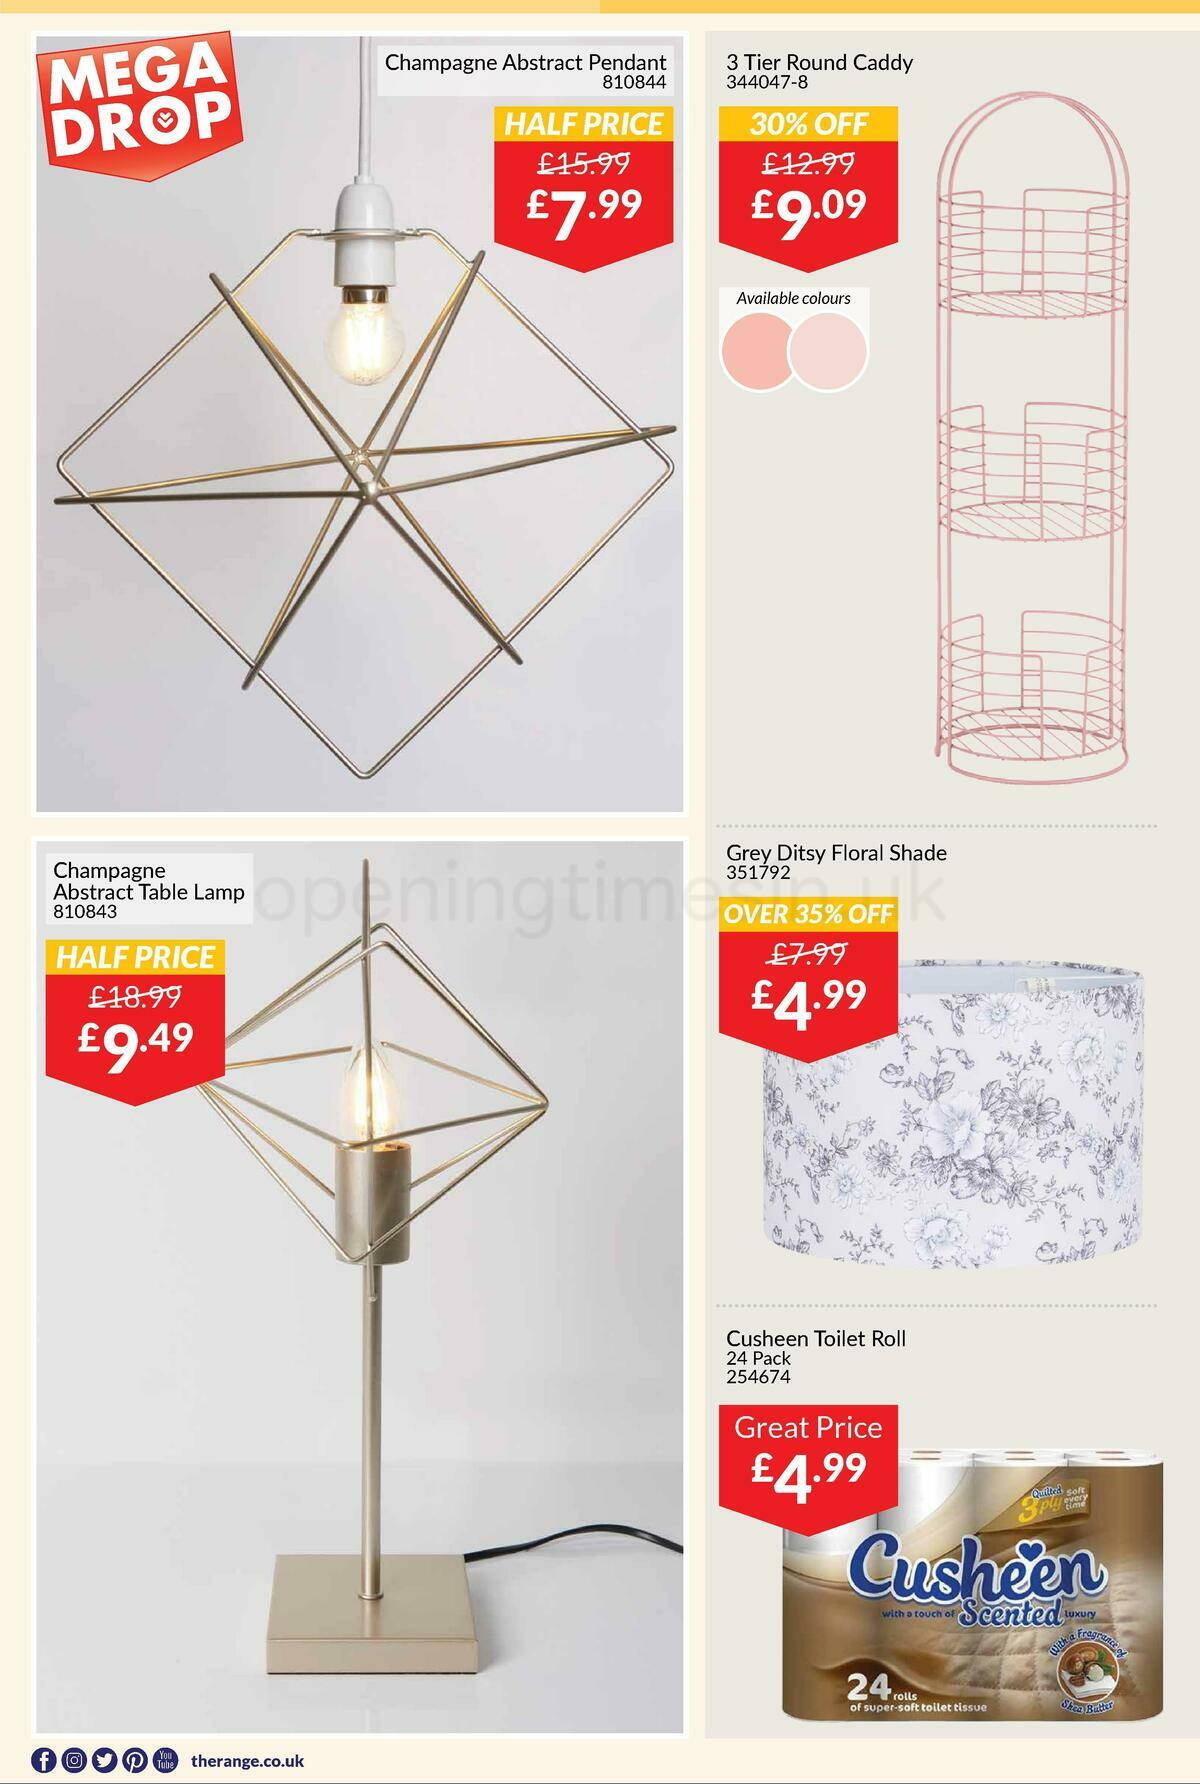 The Range Offers from January 28